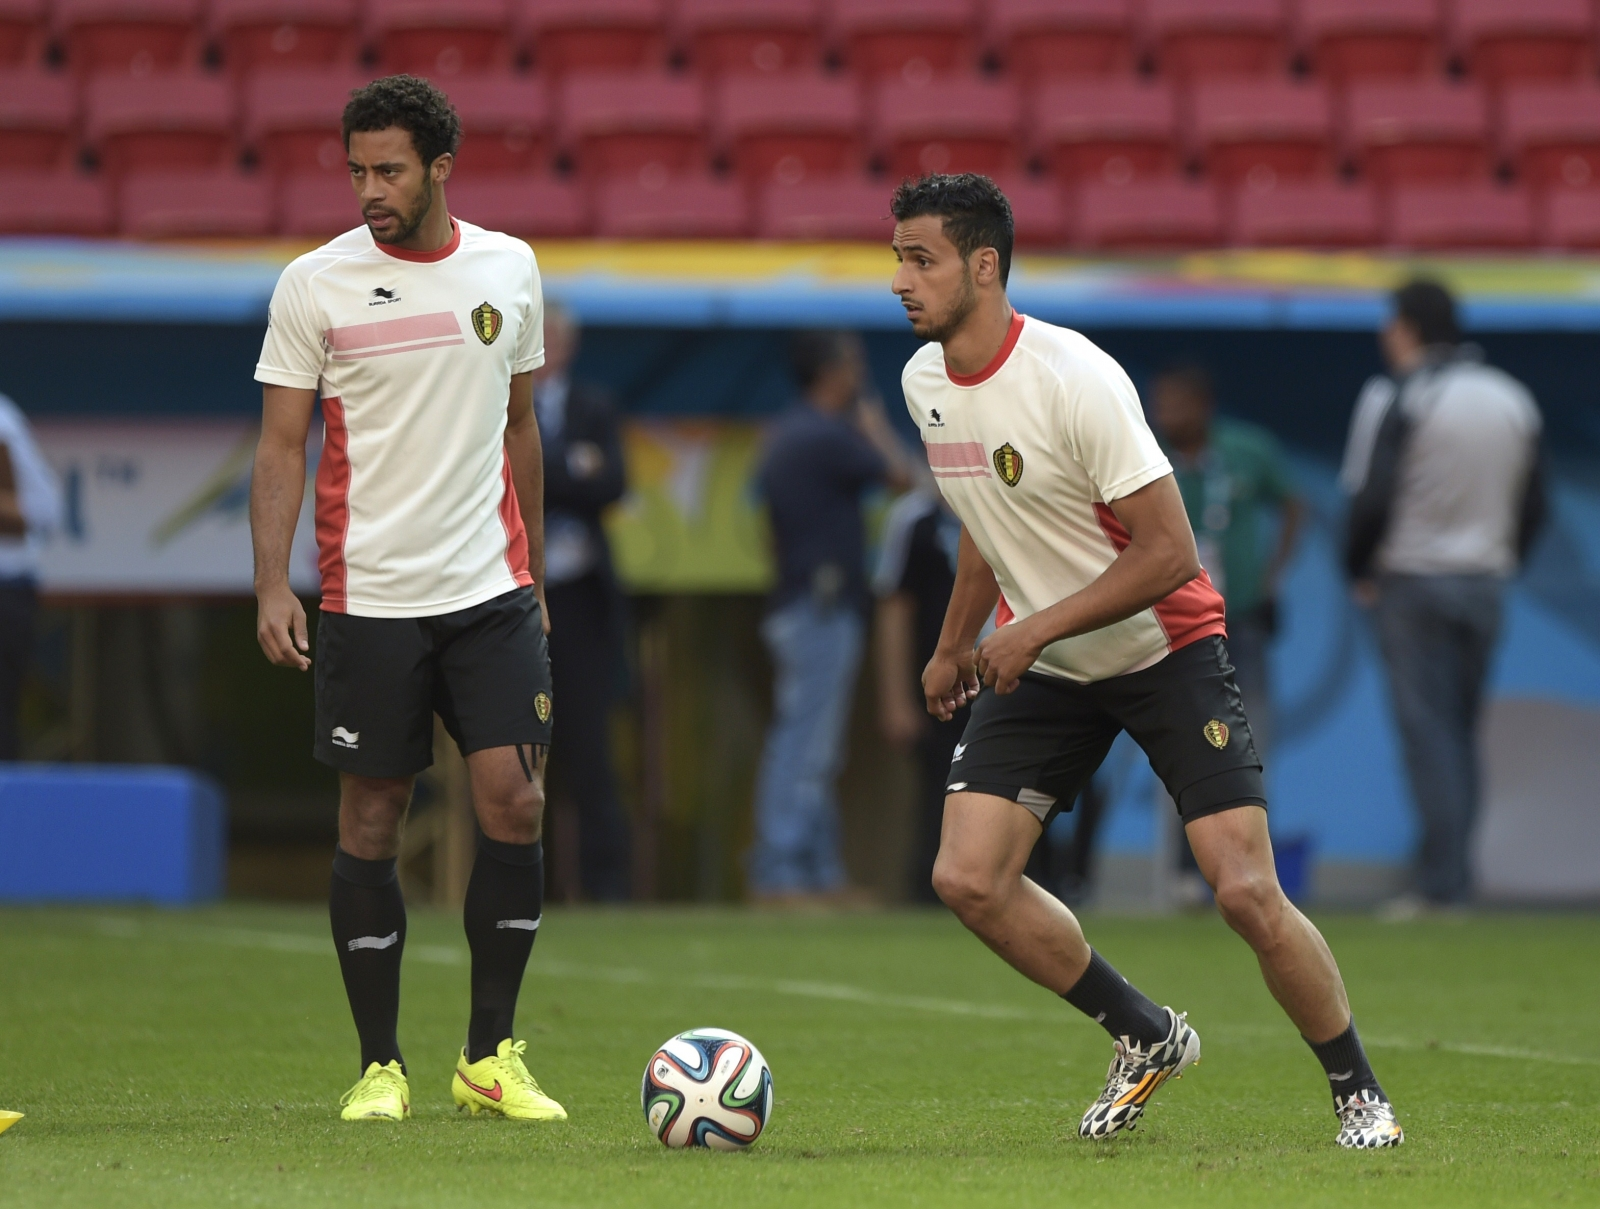 Mousa Dembele and Nacer Chadli